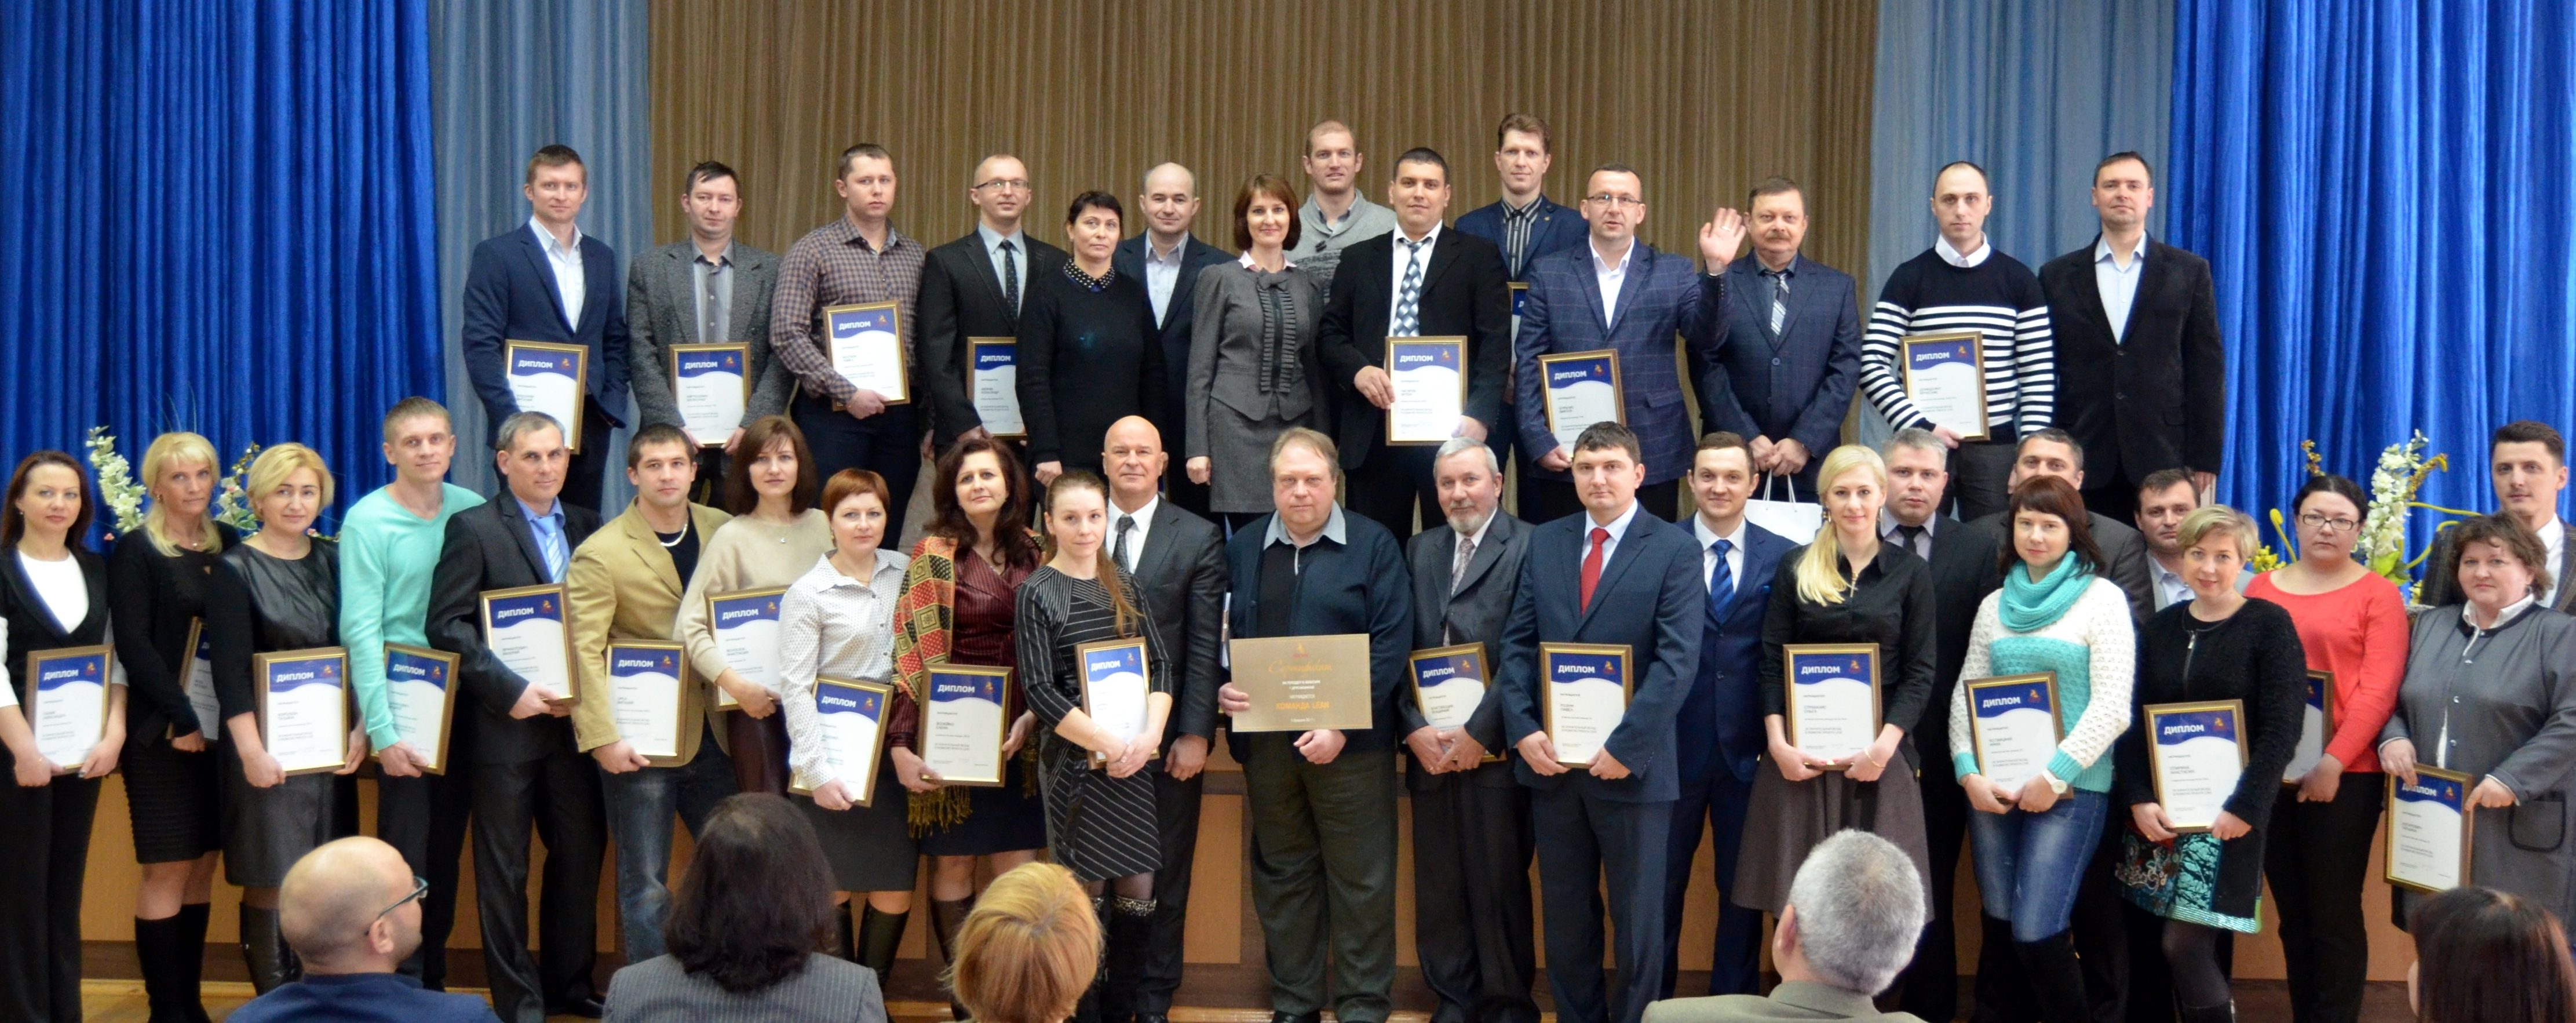 Determination of Lidskoe Pivo employees to improve results by stunning achievements in just one year